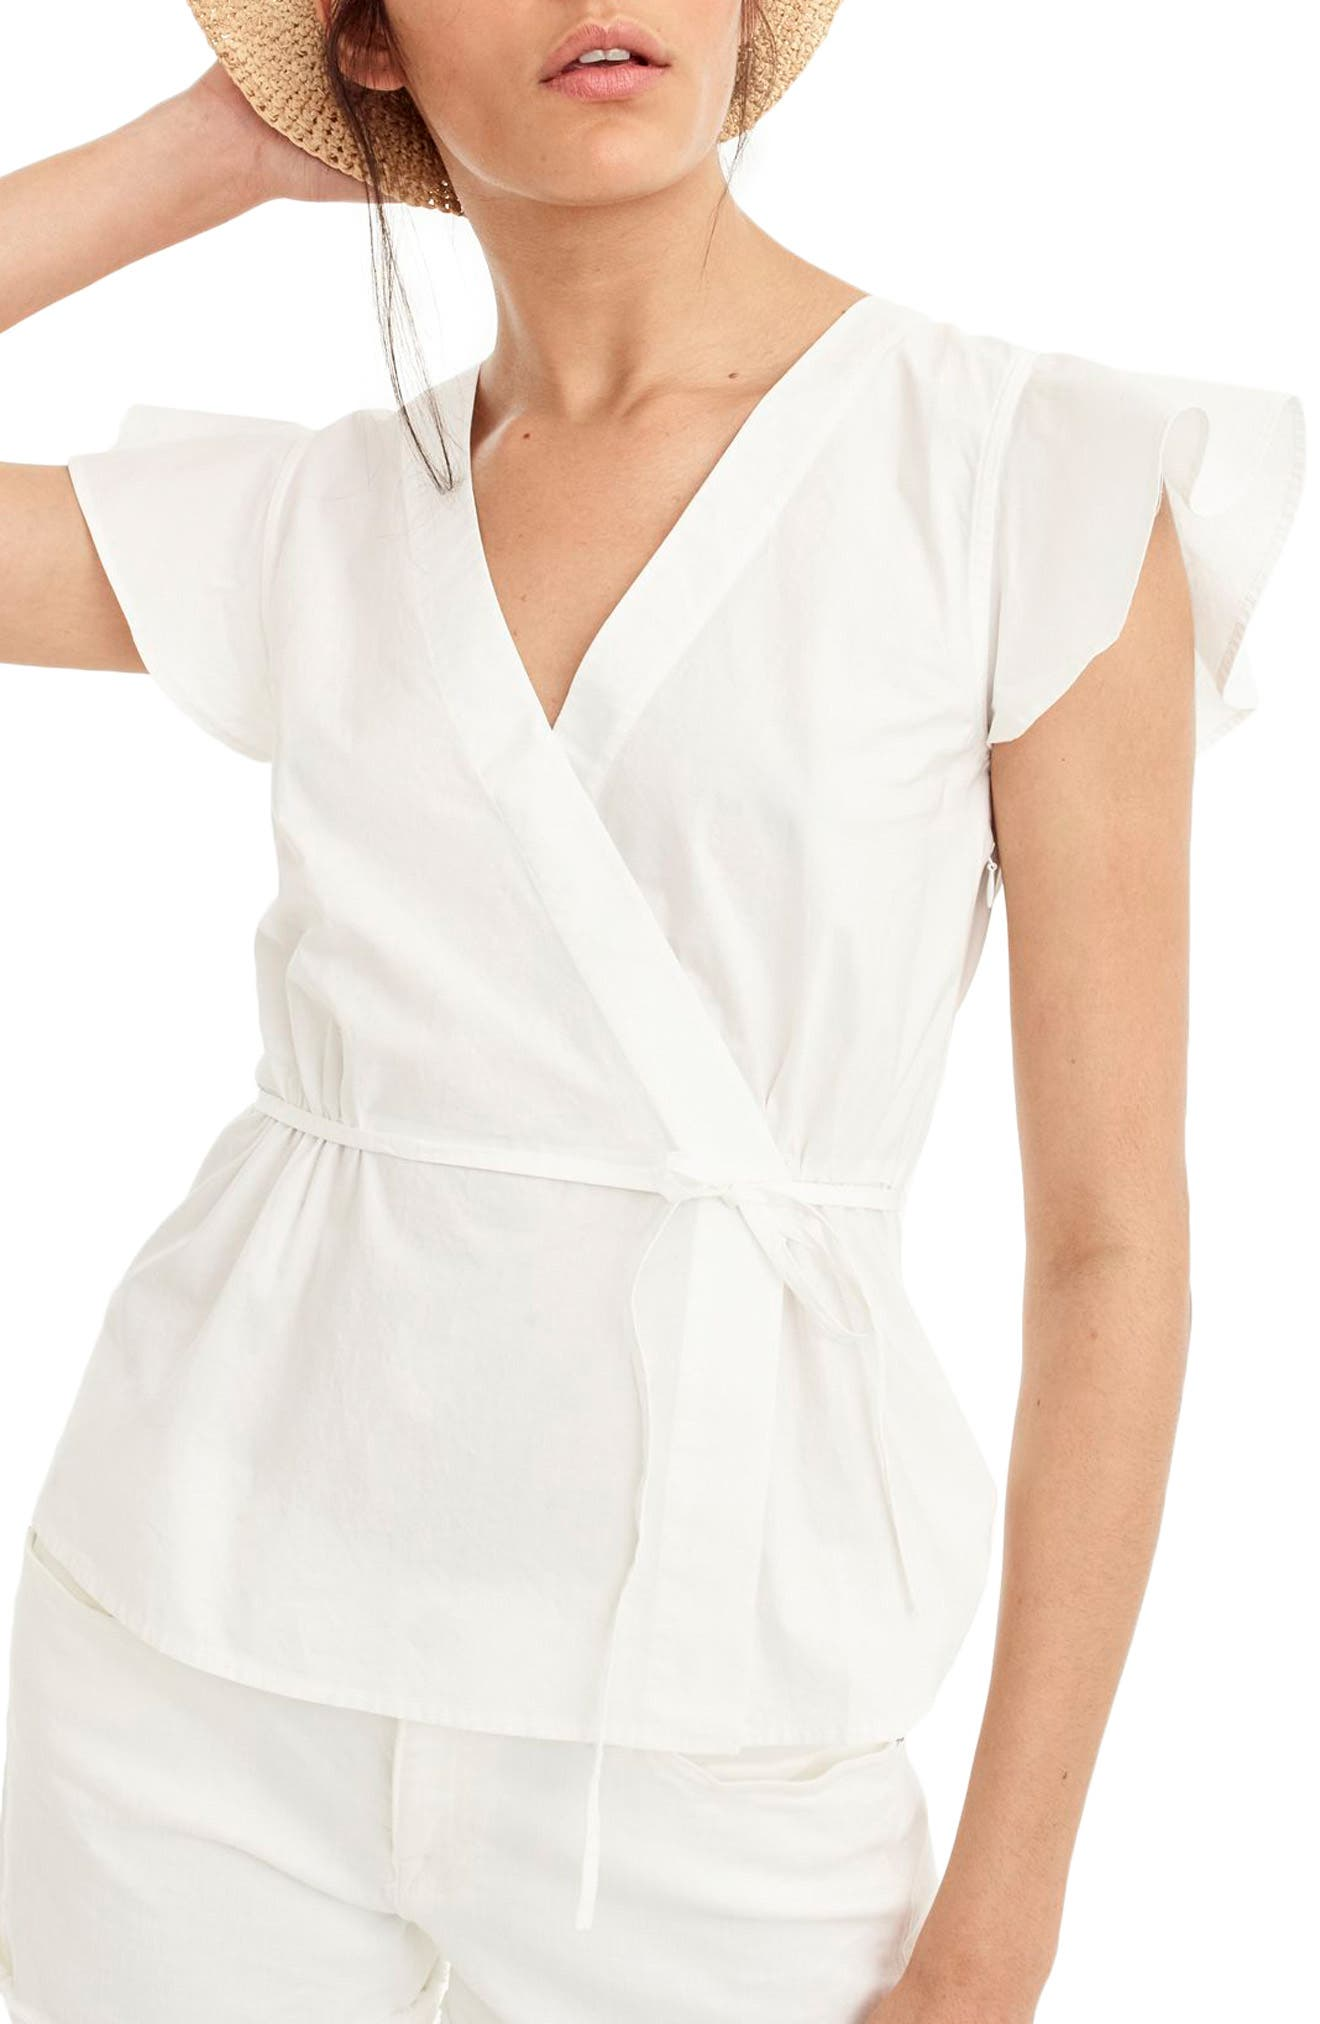 J.Crew Flutter Sleeve Cotton Poplin Wrap Top (Regular & Petite)